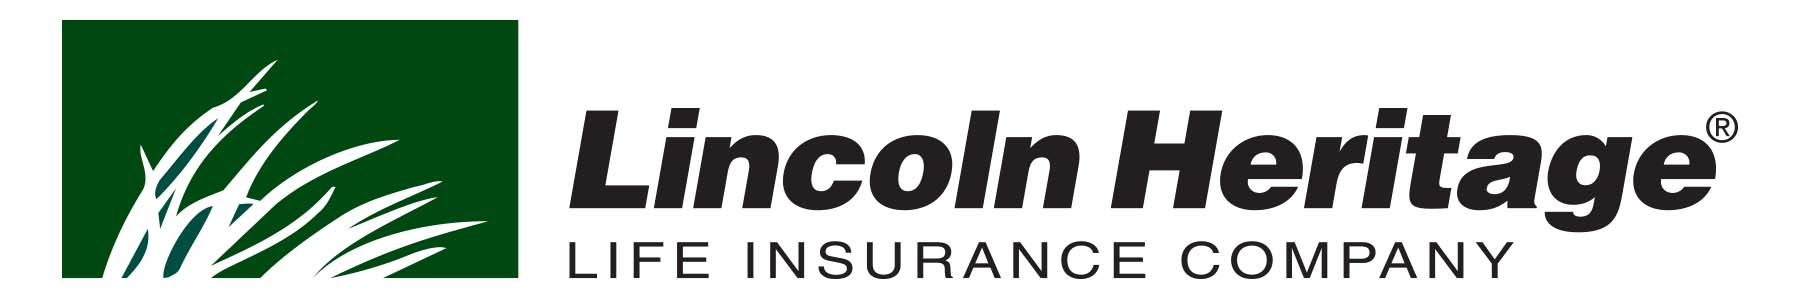 Lincoln Heritage Insurance Company